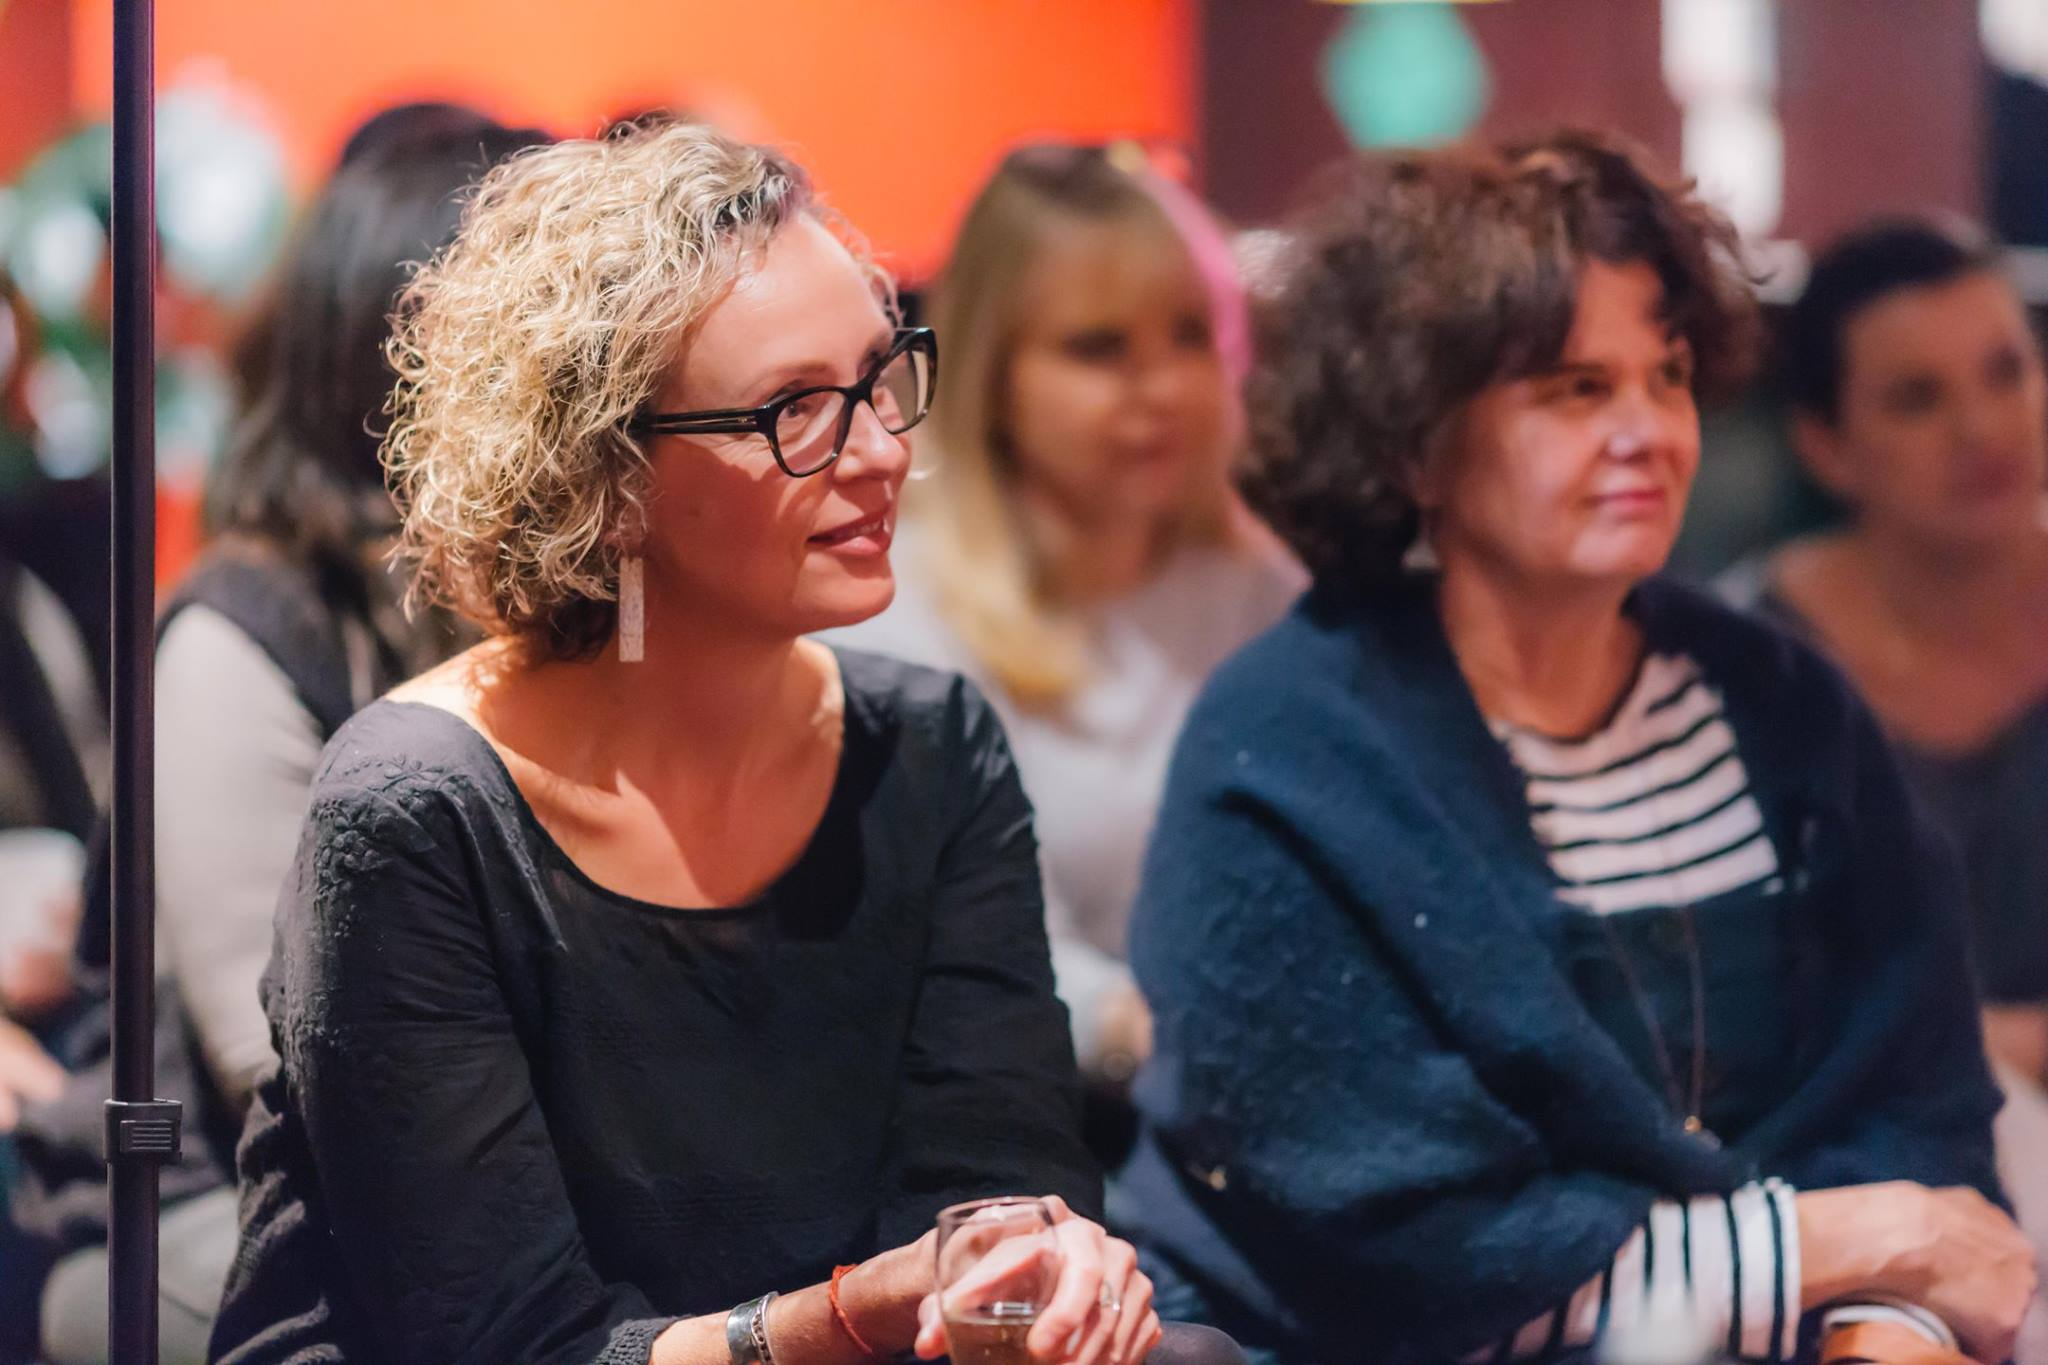 Mamas enjoying an inspiring evening with Zoe Bingley-Pullin, chef, nutritionist, TV presenter and author of the fabulous cookbook 'Falling in Love with Food'.